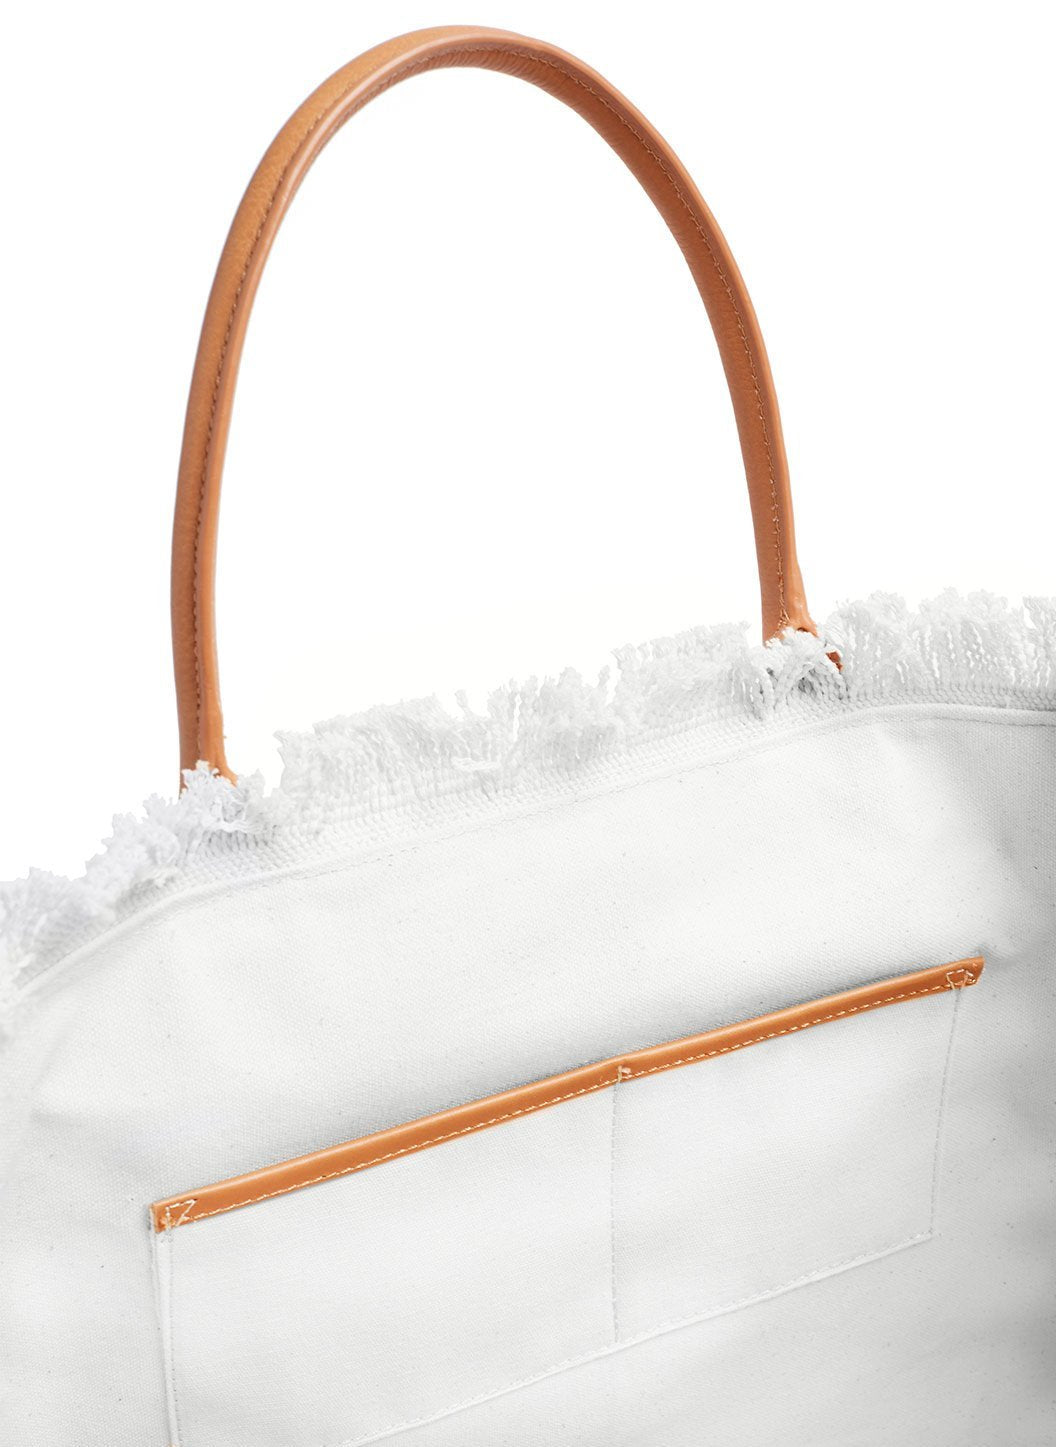 cap ferrat large beach tote white 4 2019